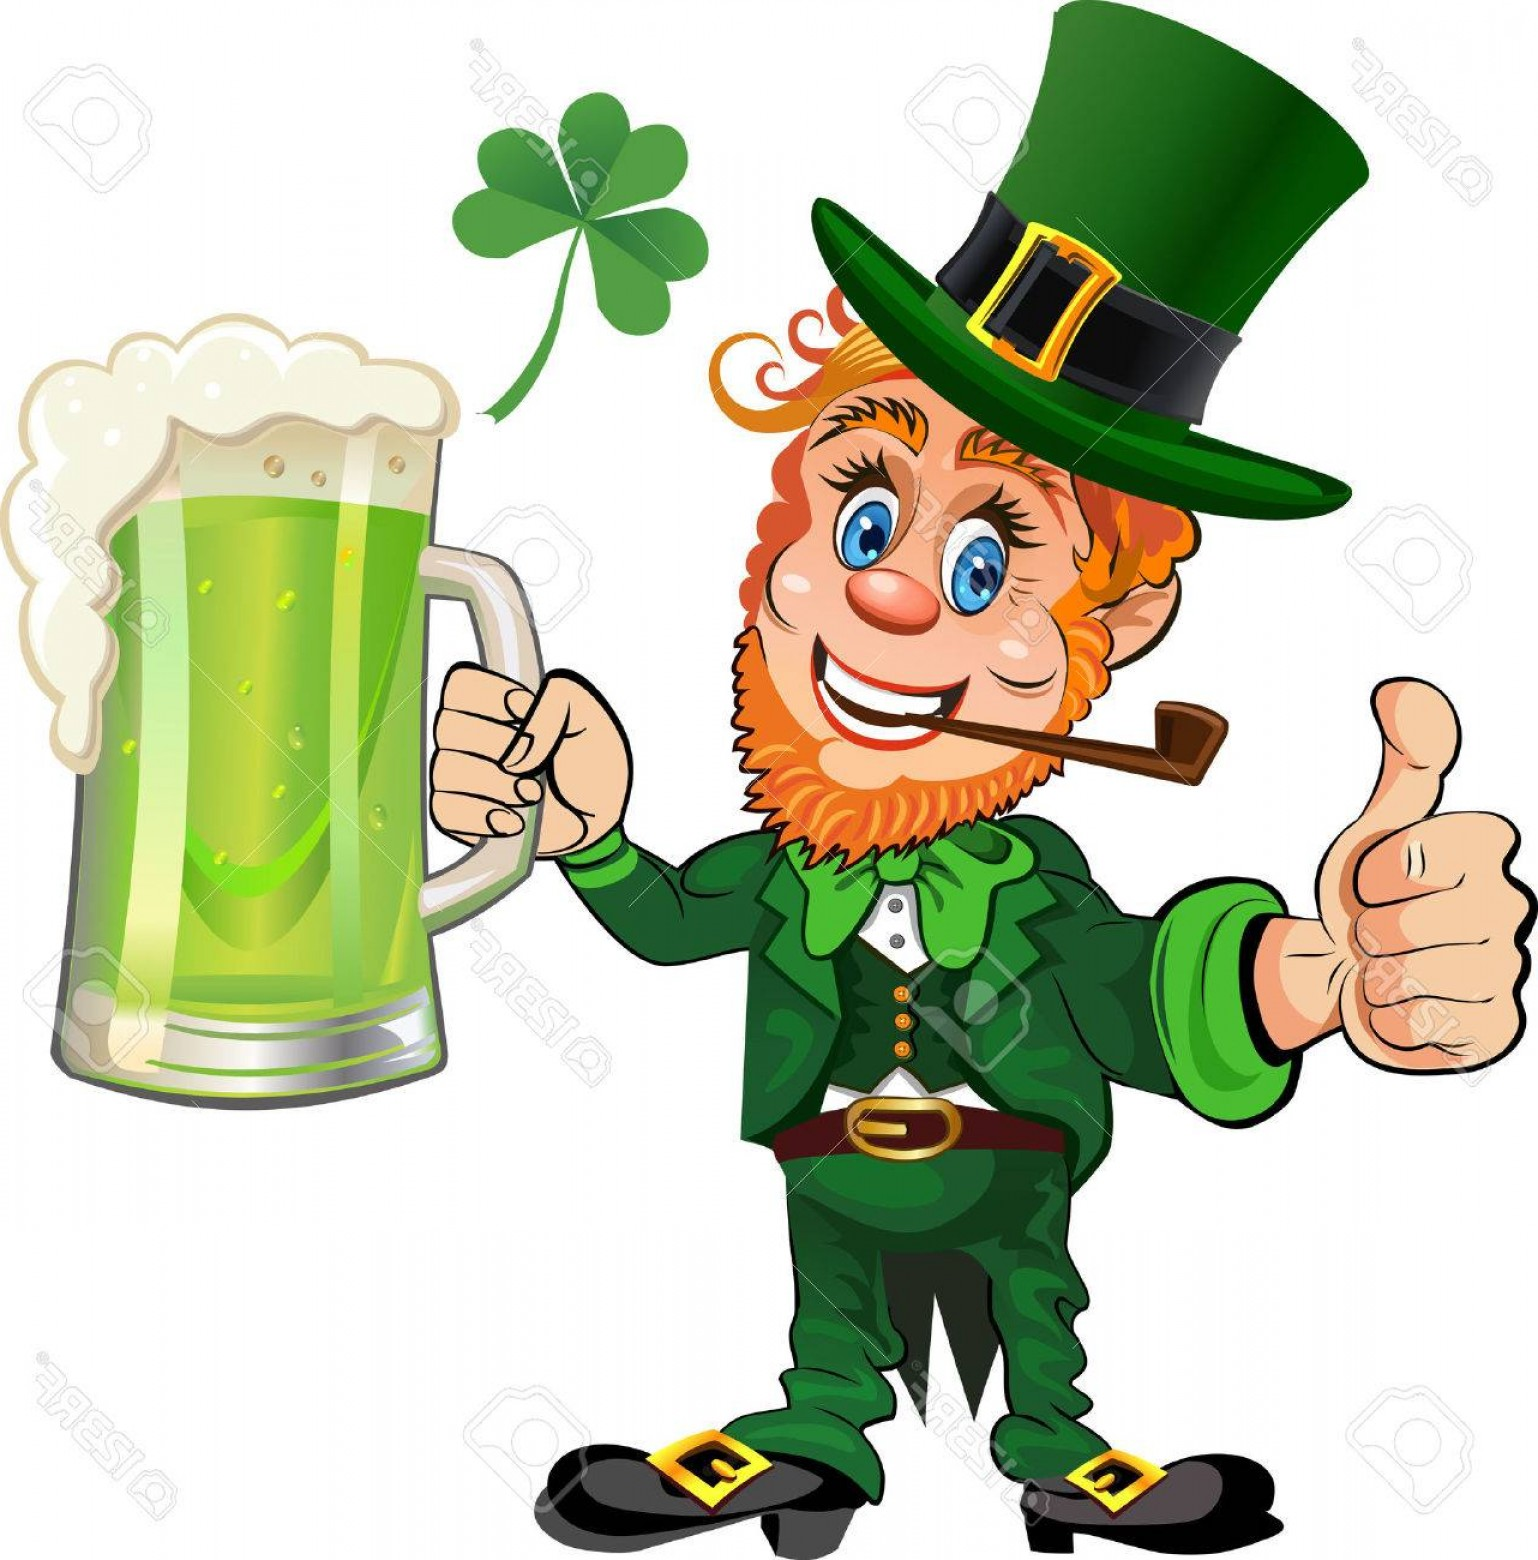 Patrick Vector Spaces: Photostock Vector St Patrick S Day Cheerful Leprechaun With Mug Of Green Beer